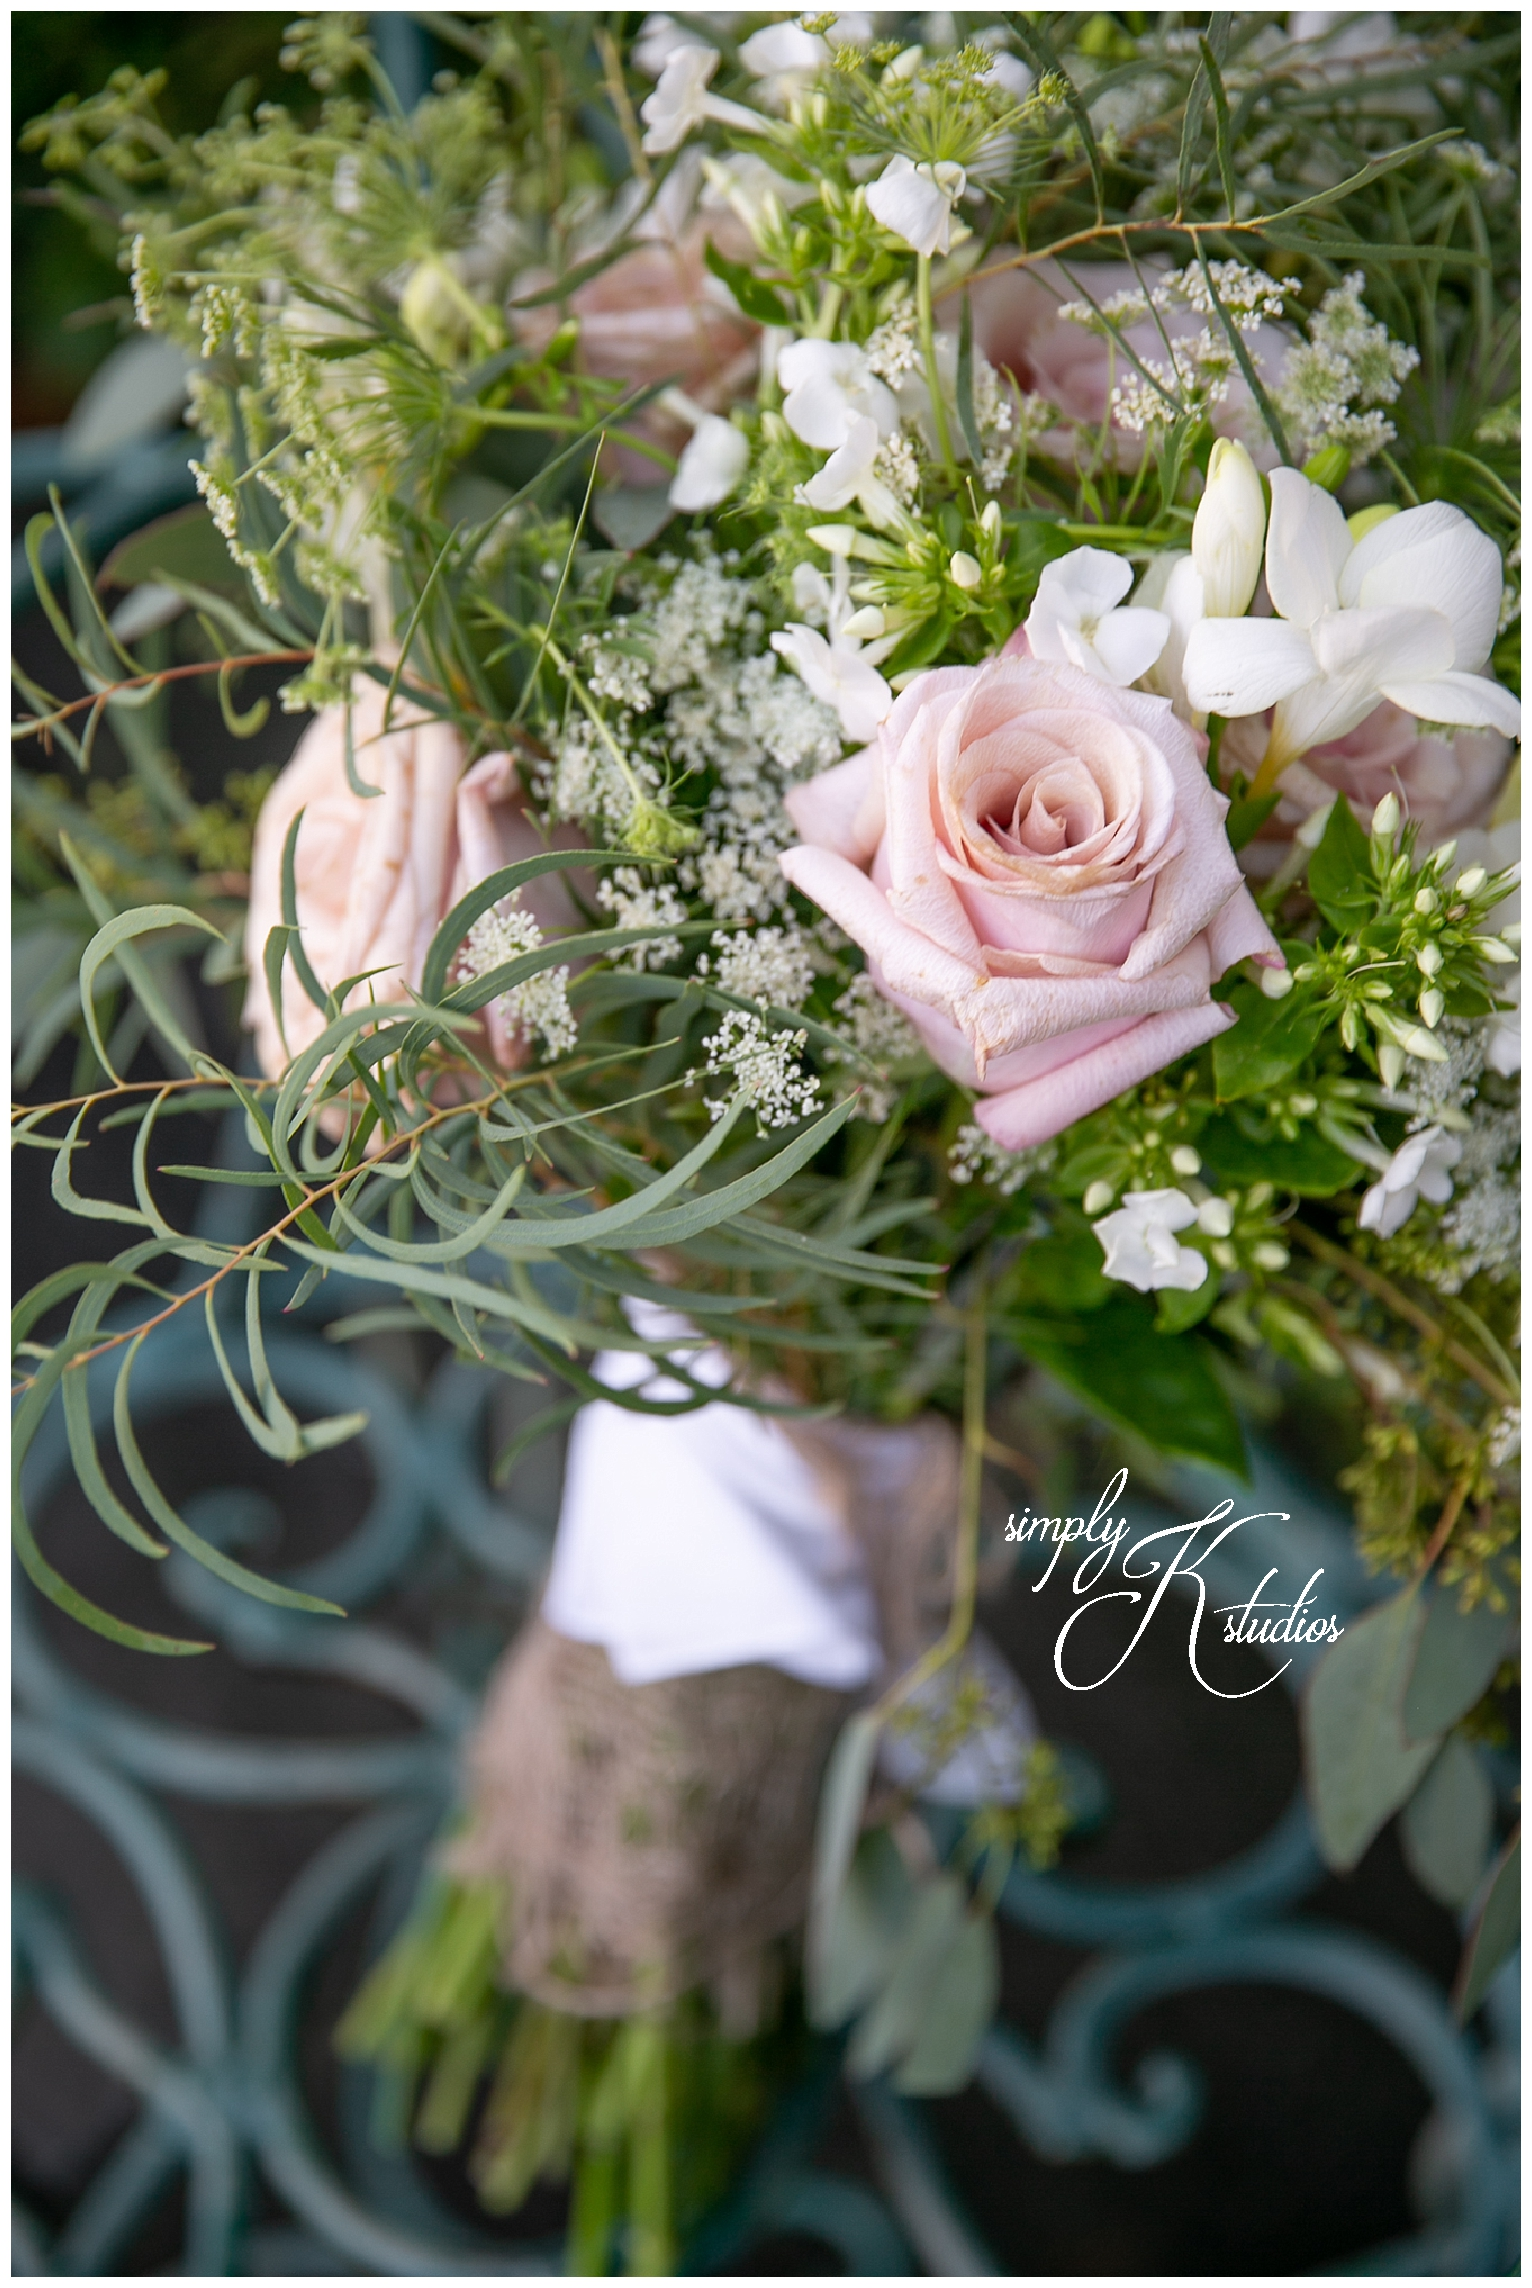 Floral Design by Melissa Bouquet for a Wedding.jpg